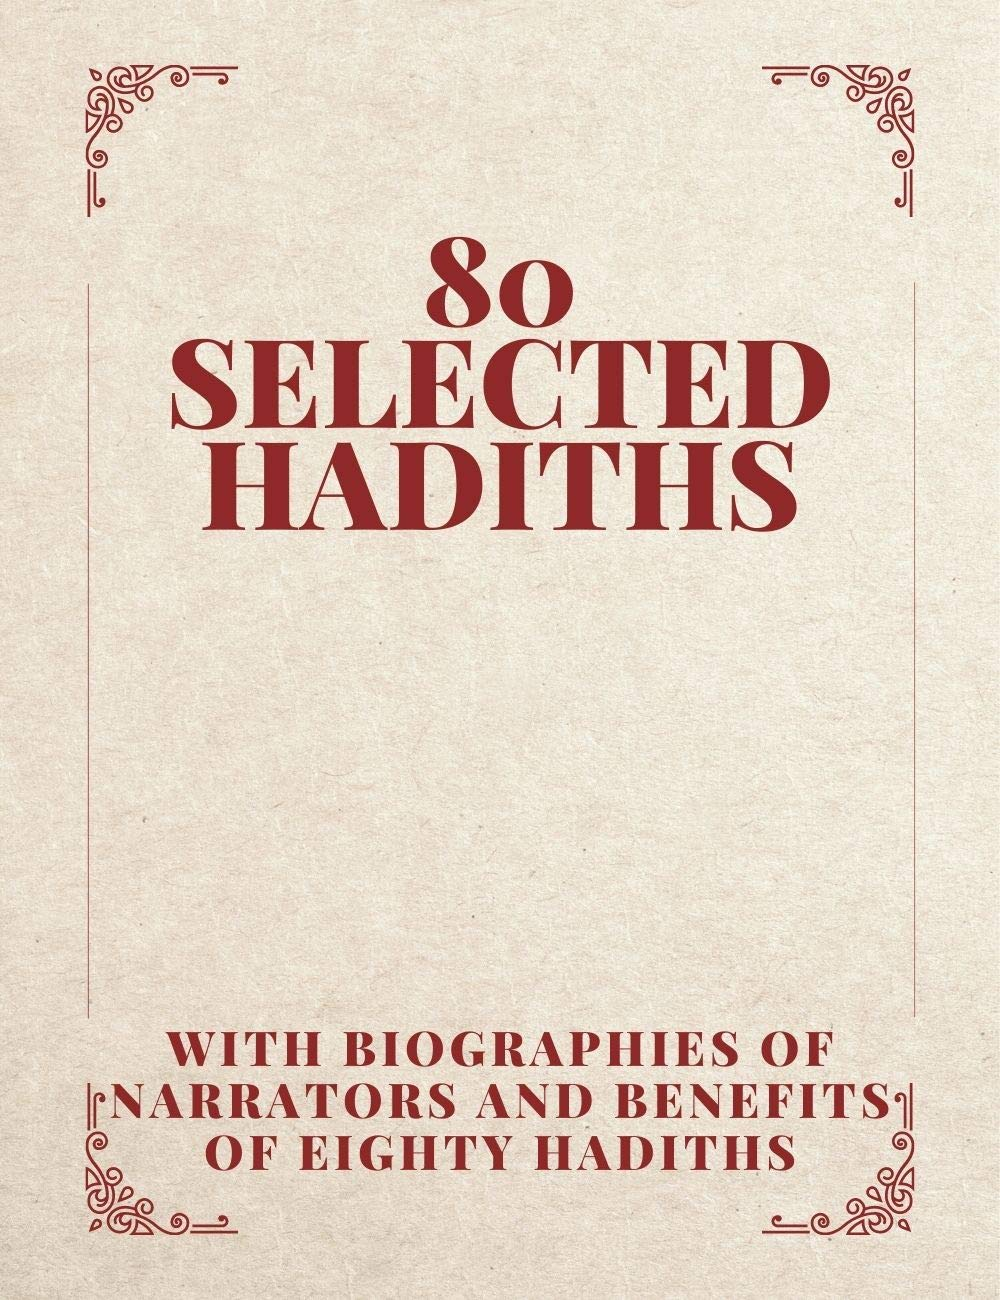 80 SELECTED HADITHS With Biographies of Narrators and Benefits of Eighty Hadiths: understand and live the sunnah of our prophet Muhammad (peace be upon him).